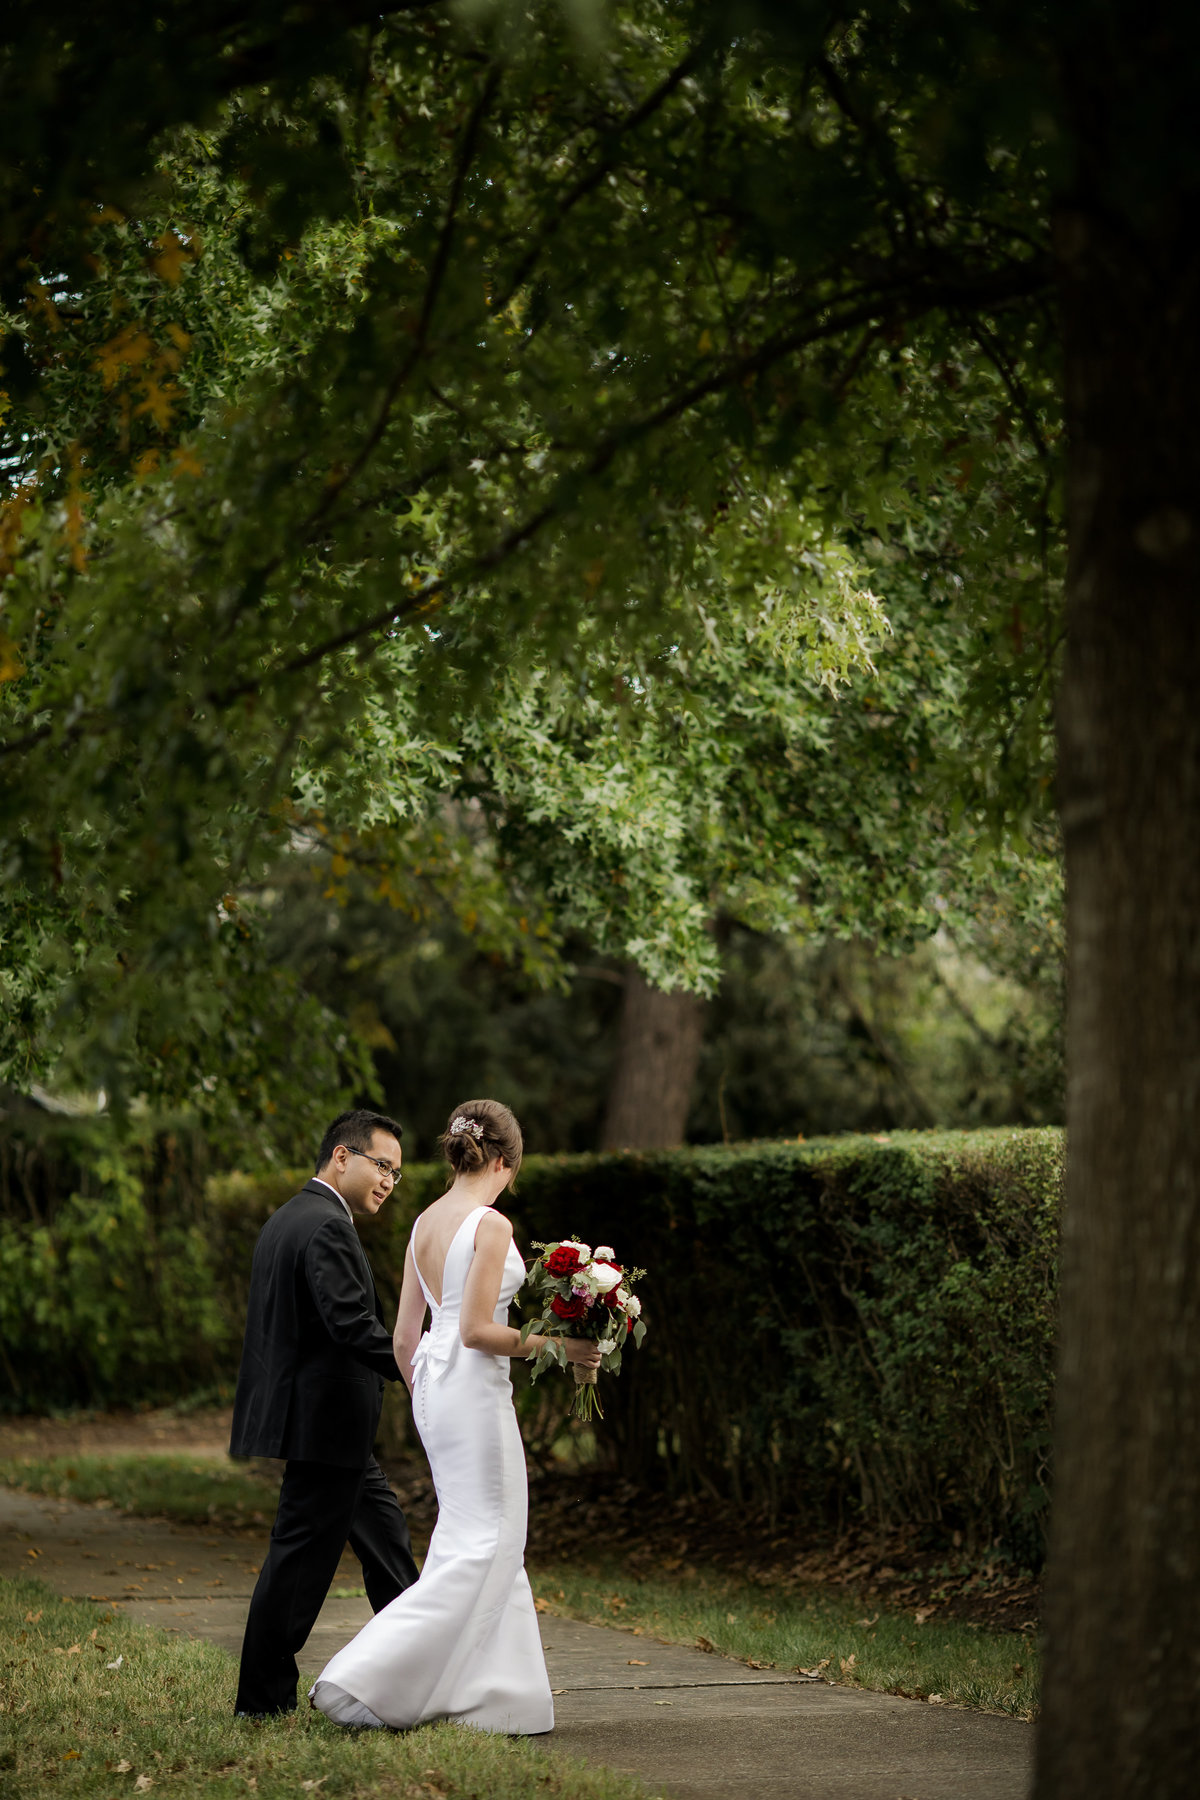 Virginia Bride - Virginia Weddings - Virginia Wedding Photographer - Virginia Wedding Photographers - Soutehrn Bride - Church Wedding - Catholic Wedding - Classic Bride - Nashville Wedding Photographer - Nashville Wedding Photographers048